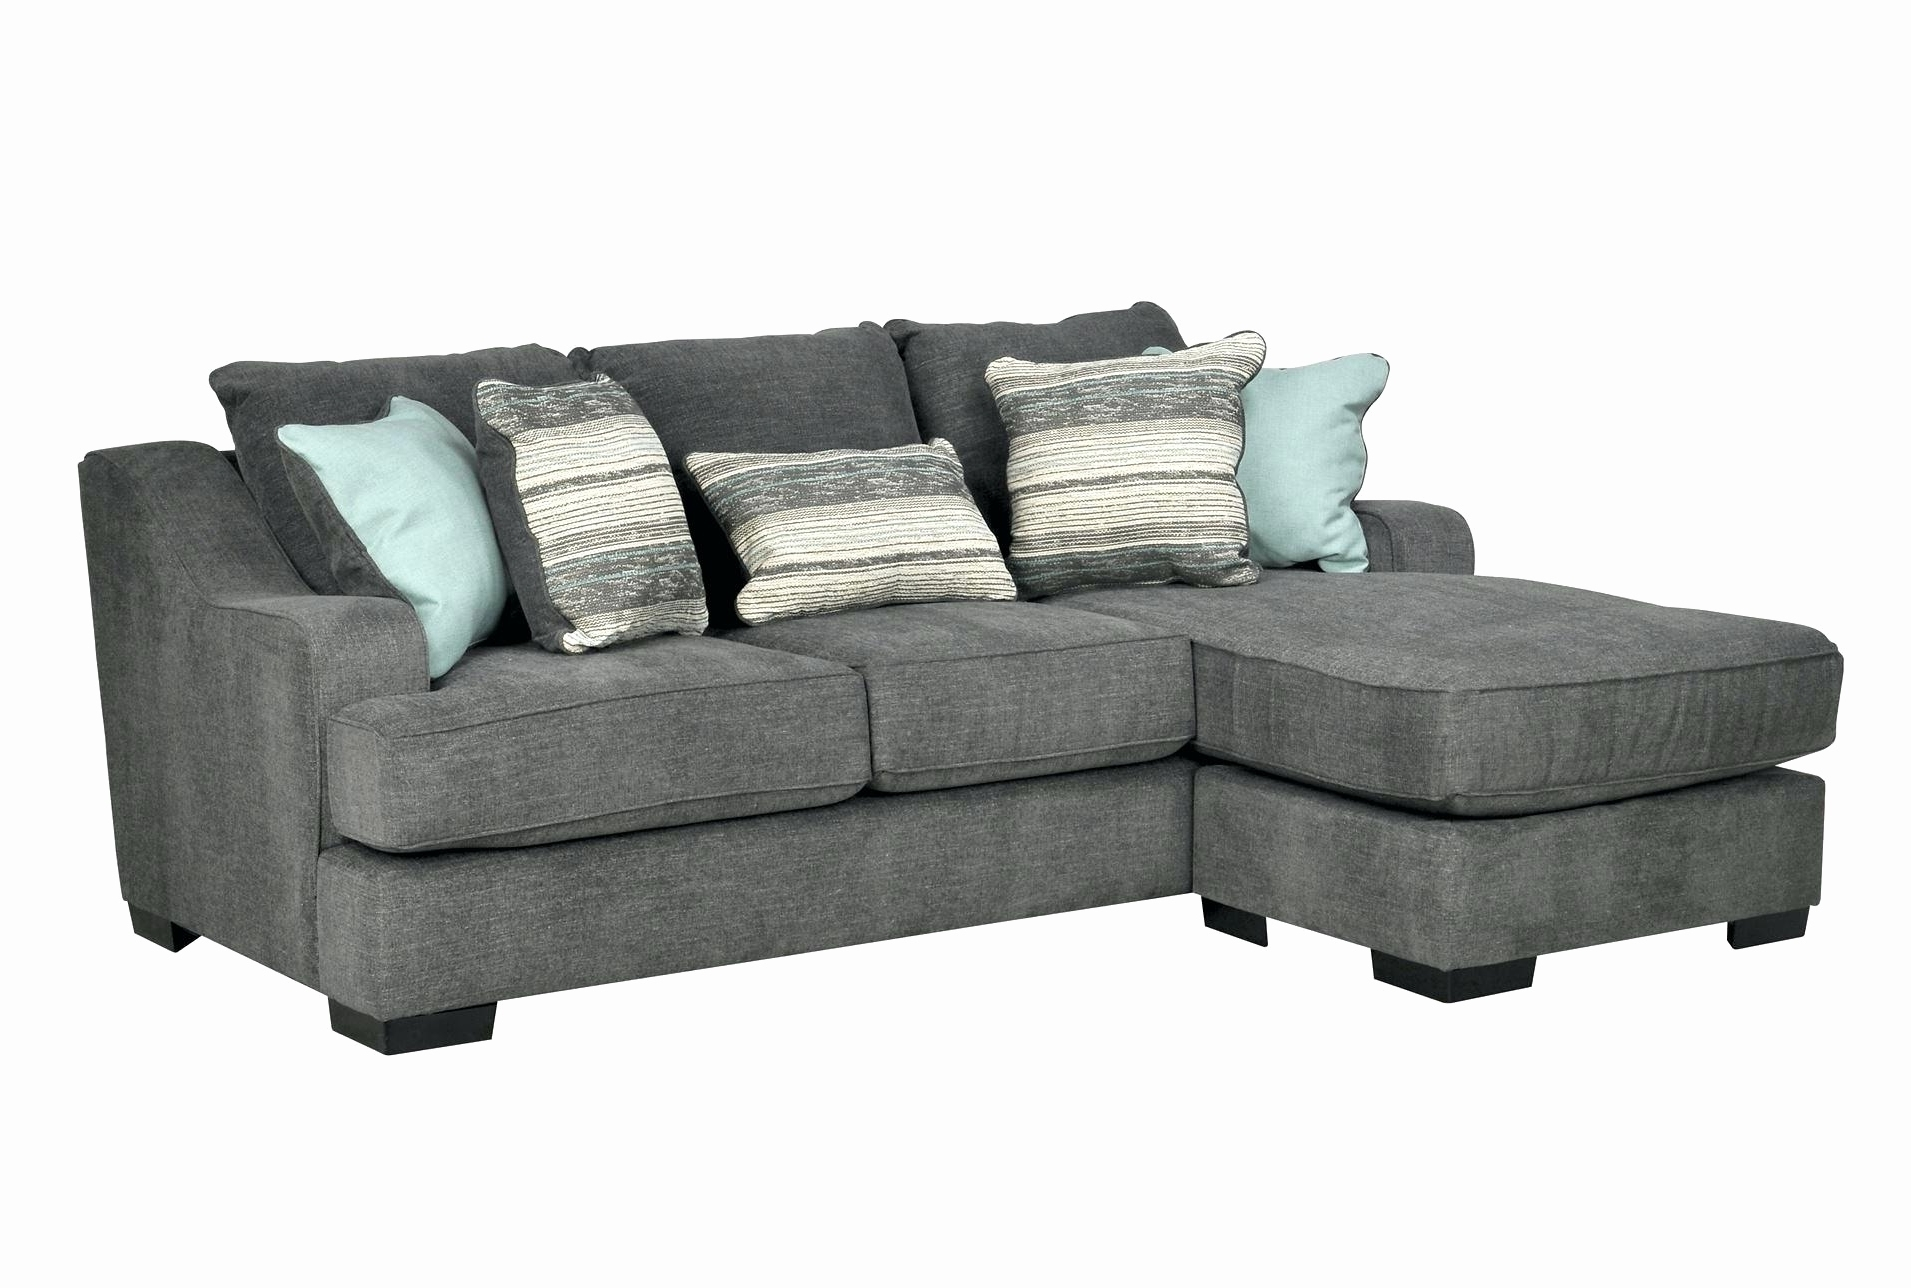 Fashionable Small Chaise Sofas Within Sofas : Corner Chaise Lounge Blue Chaise Lounge Double Chaise (View 8 of 15)